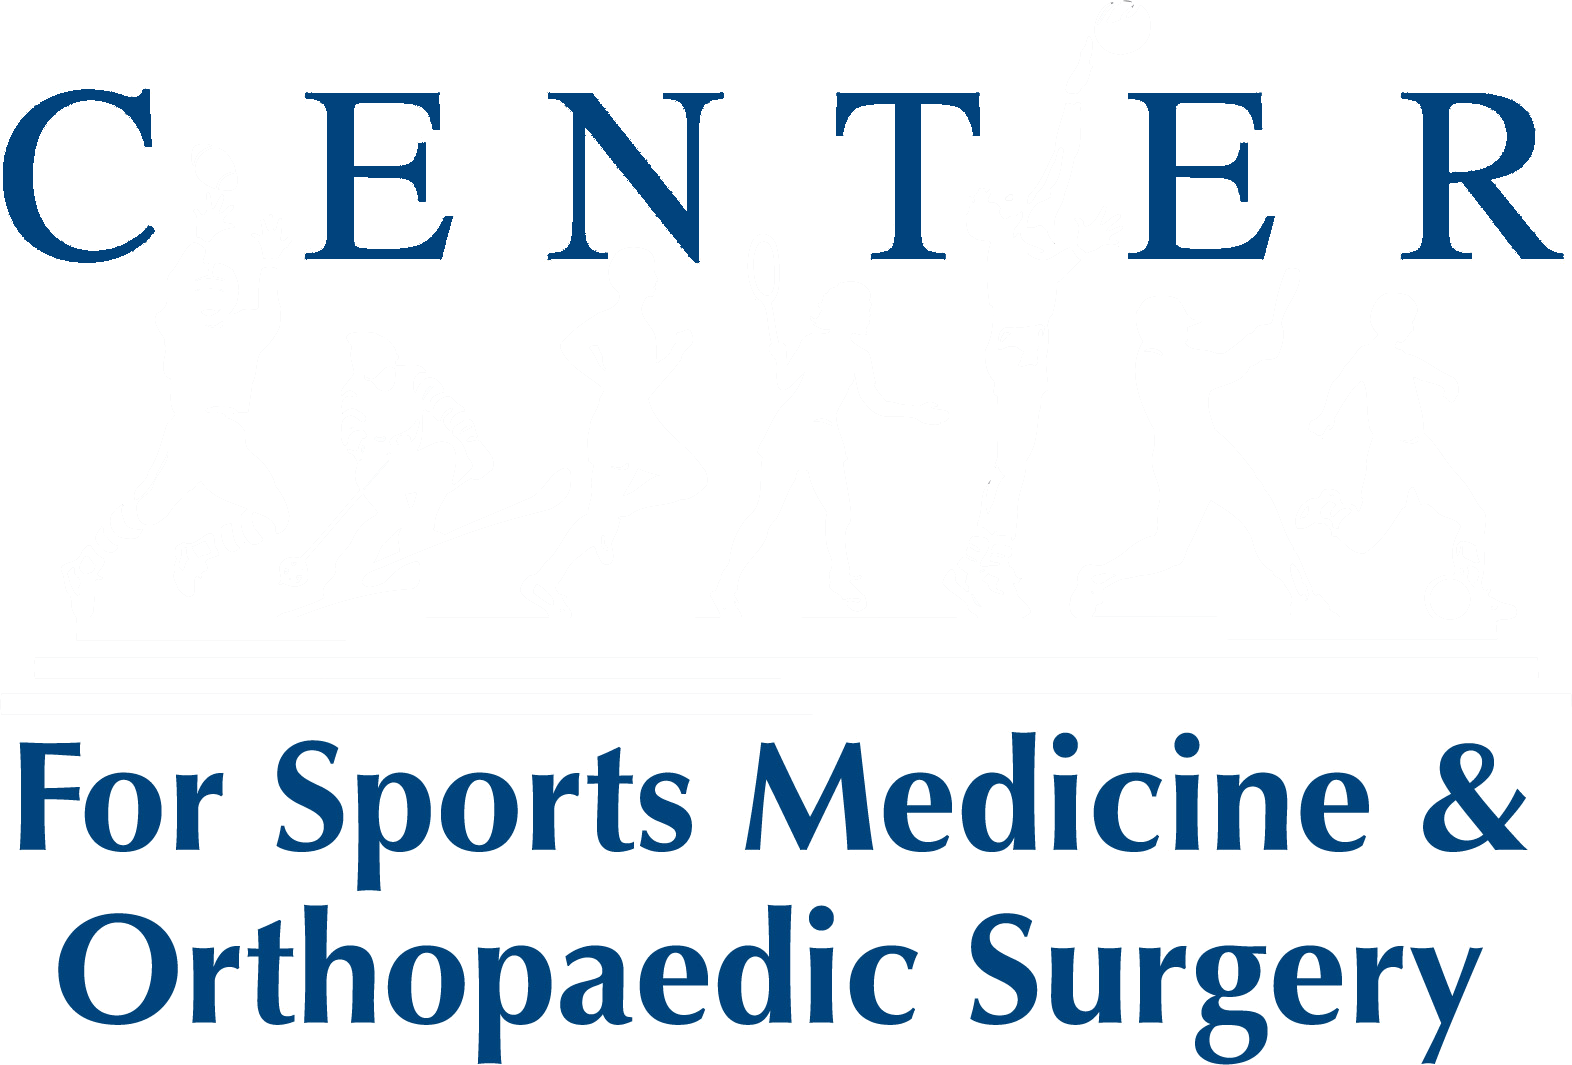 Center for Sports Medicine & Orthopaedic Surgery